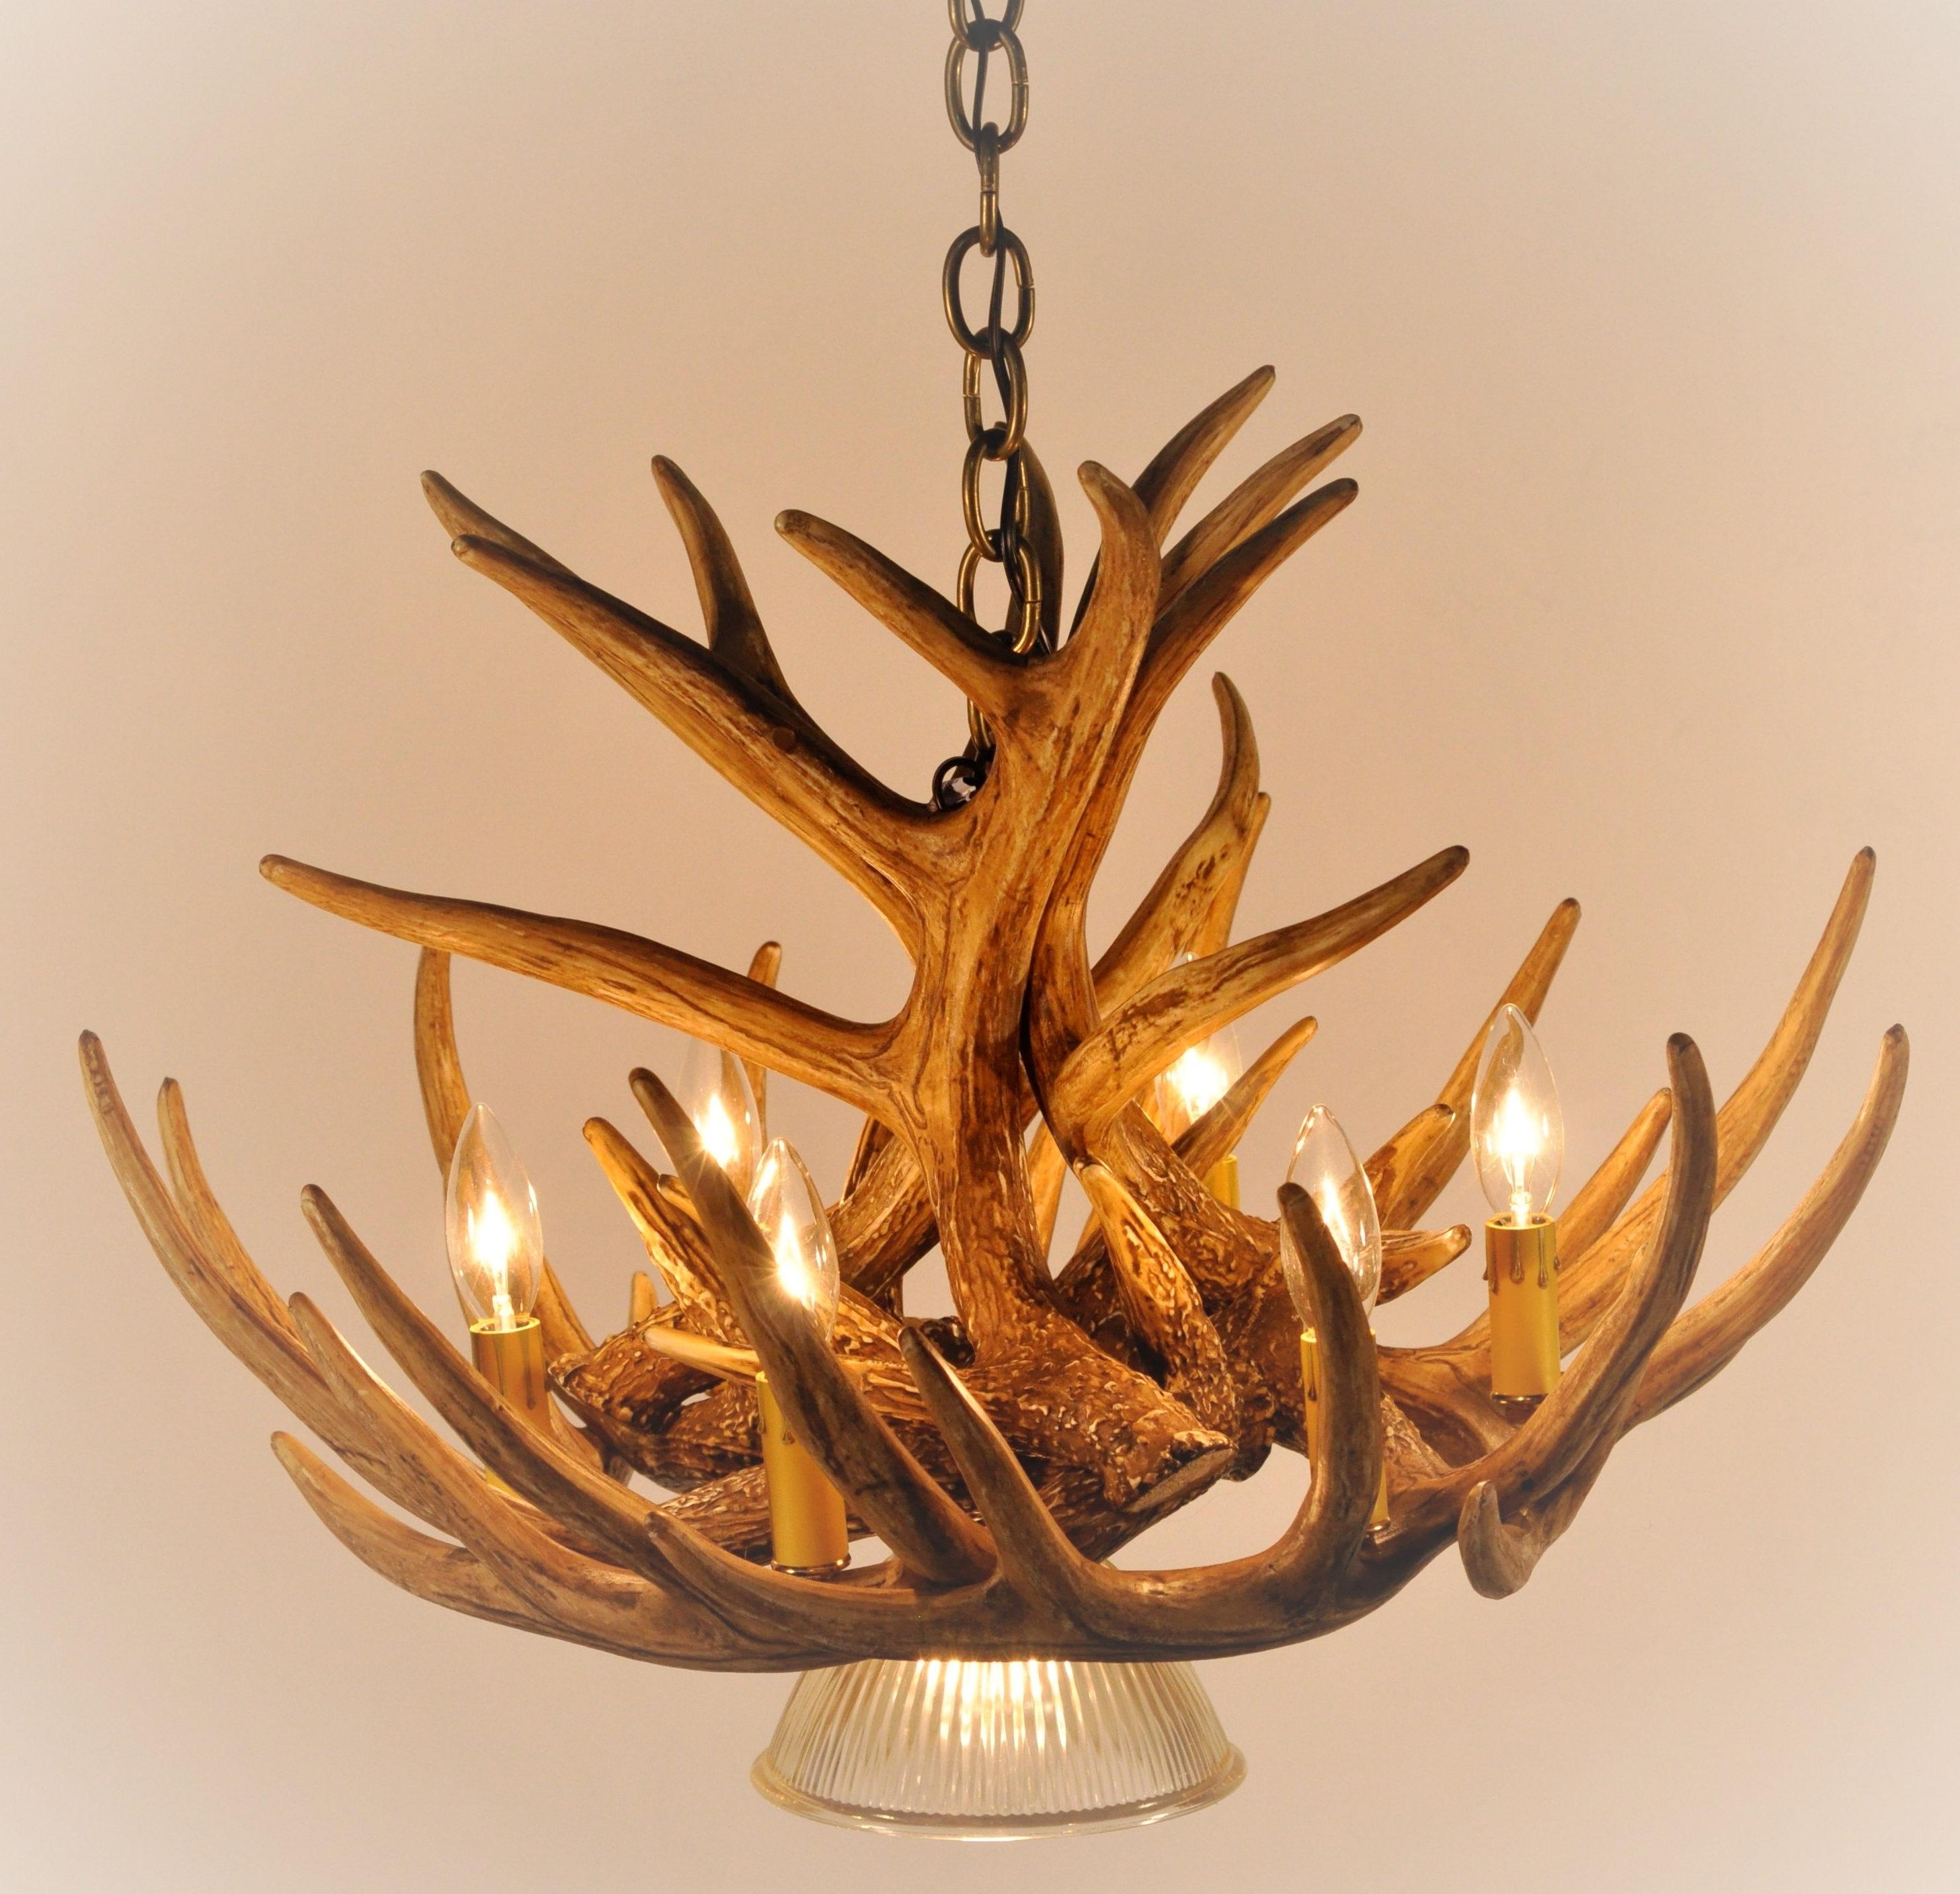 2017 Whitetail Deer 9 Antler Cascade Chandelier With 1 Downlight* – Cast Throughout Antler Chandeliers (View 2 of 15)